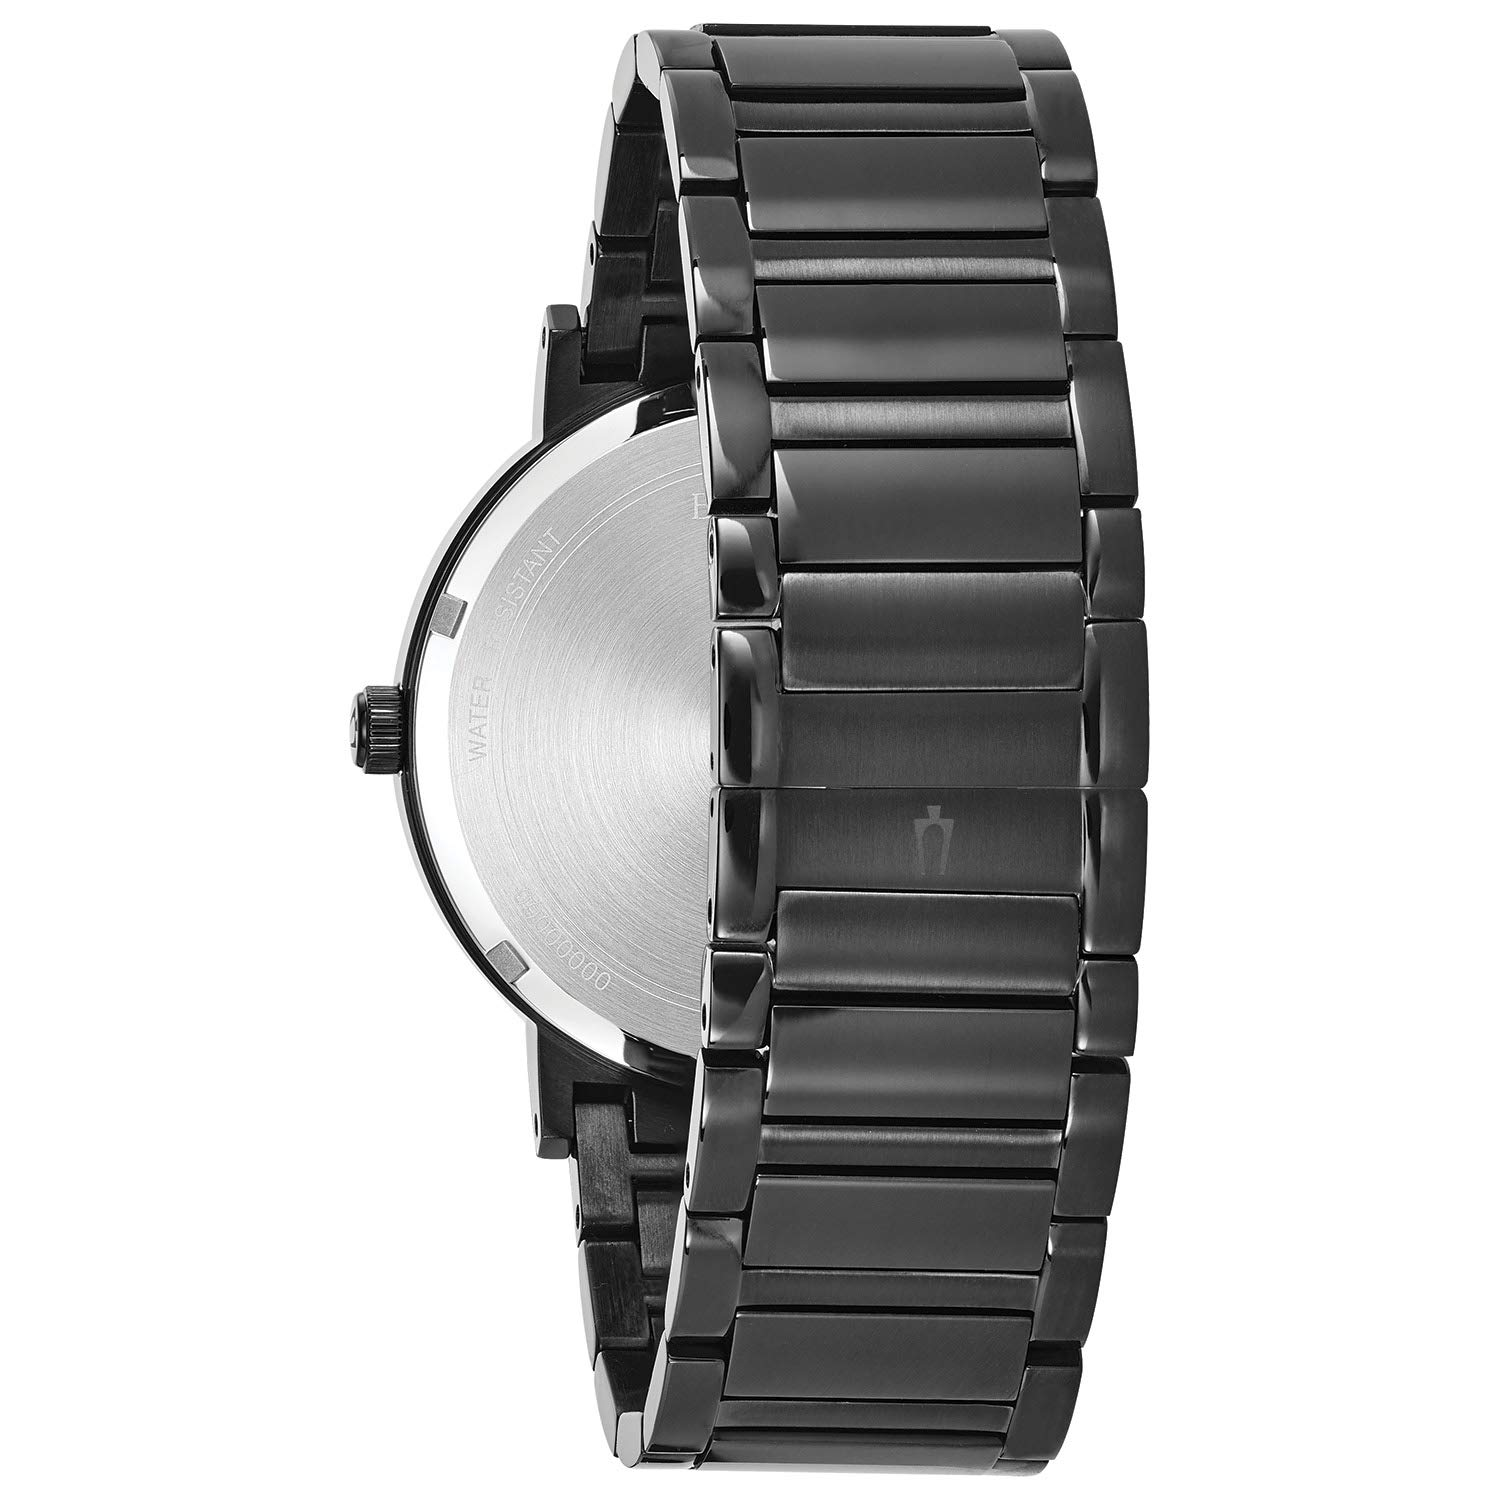 Bulova Men Modern Quartz Watch with StainlessSteel Strap Black 22 Model 98D144